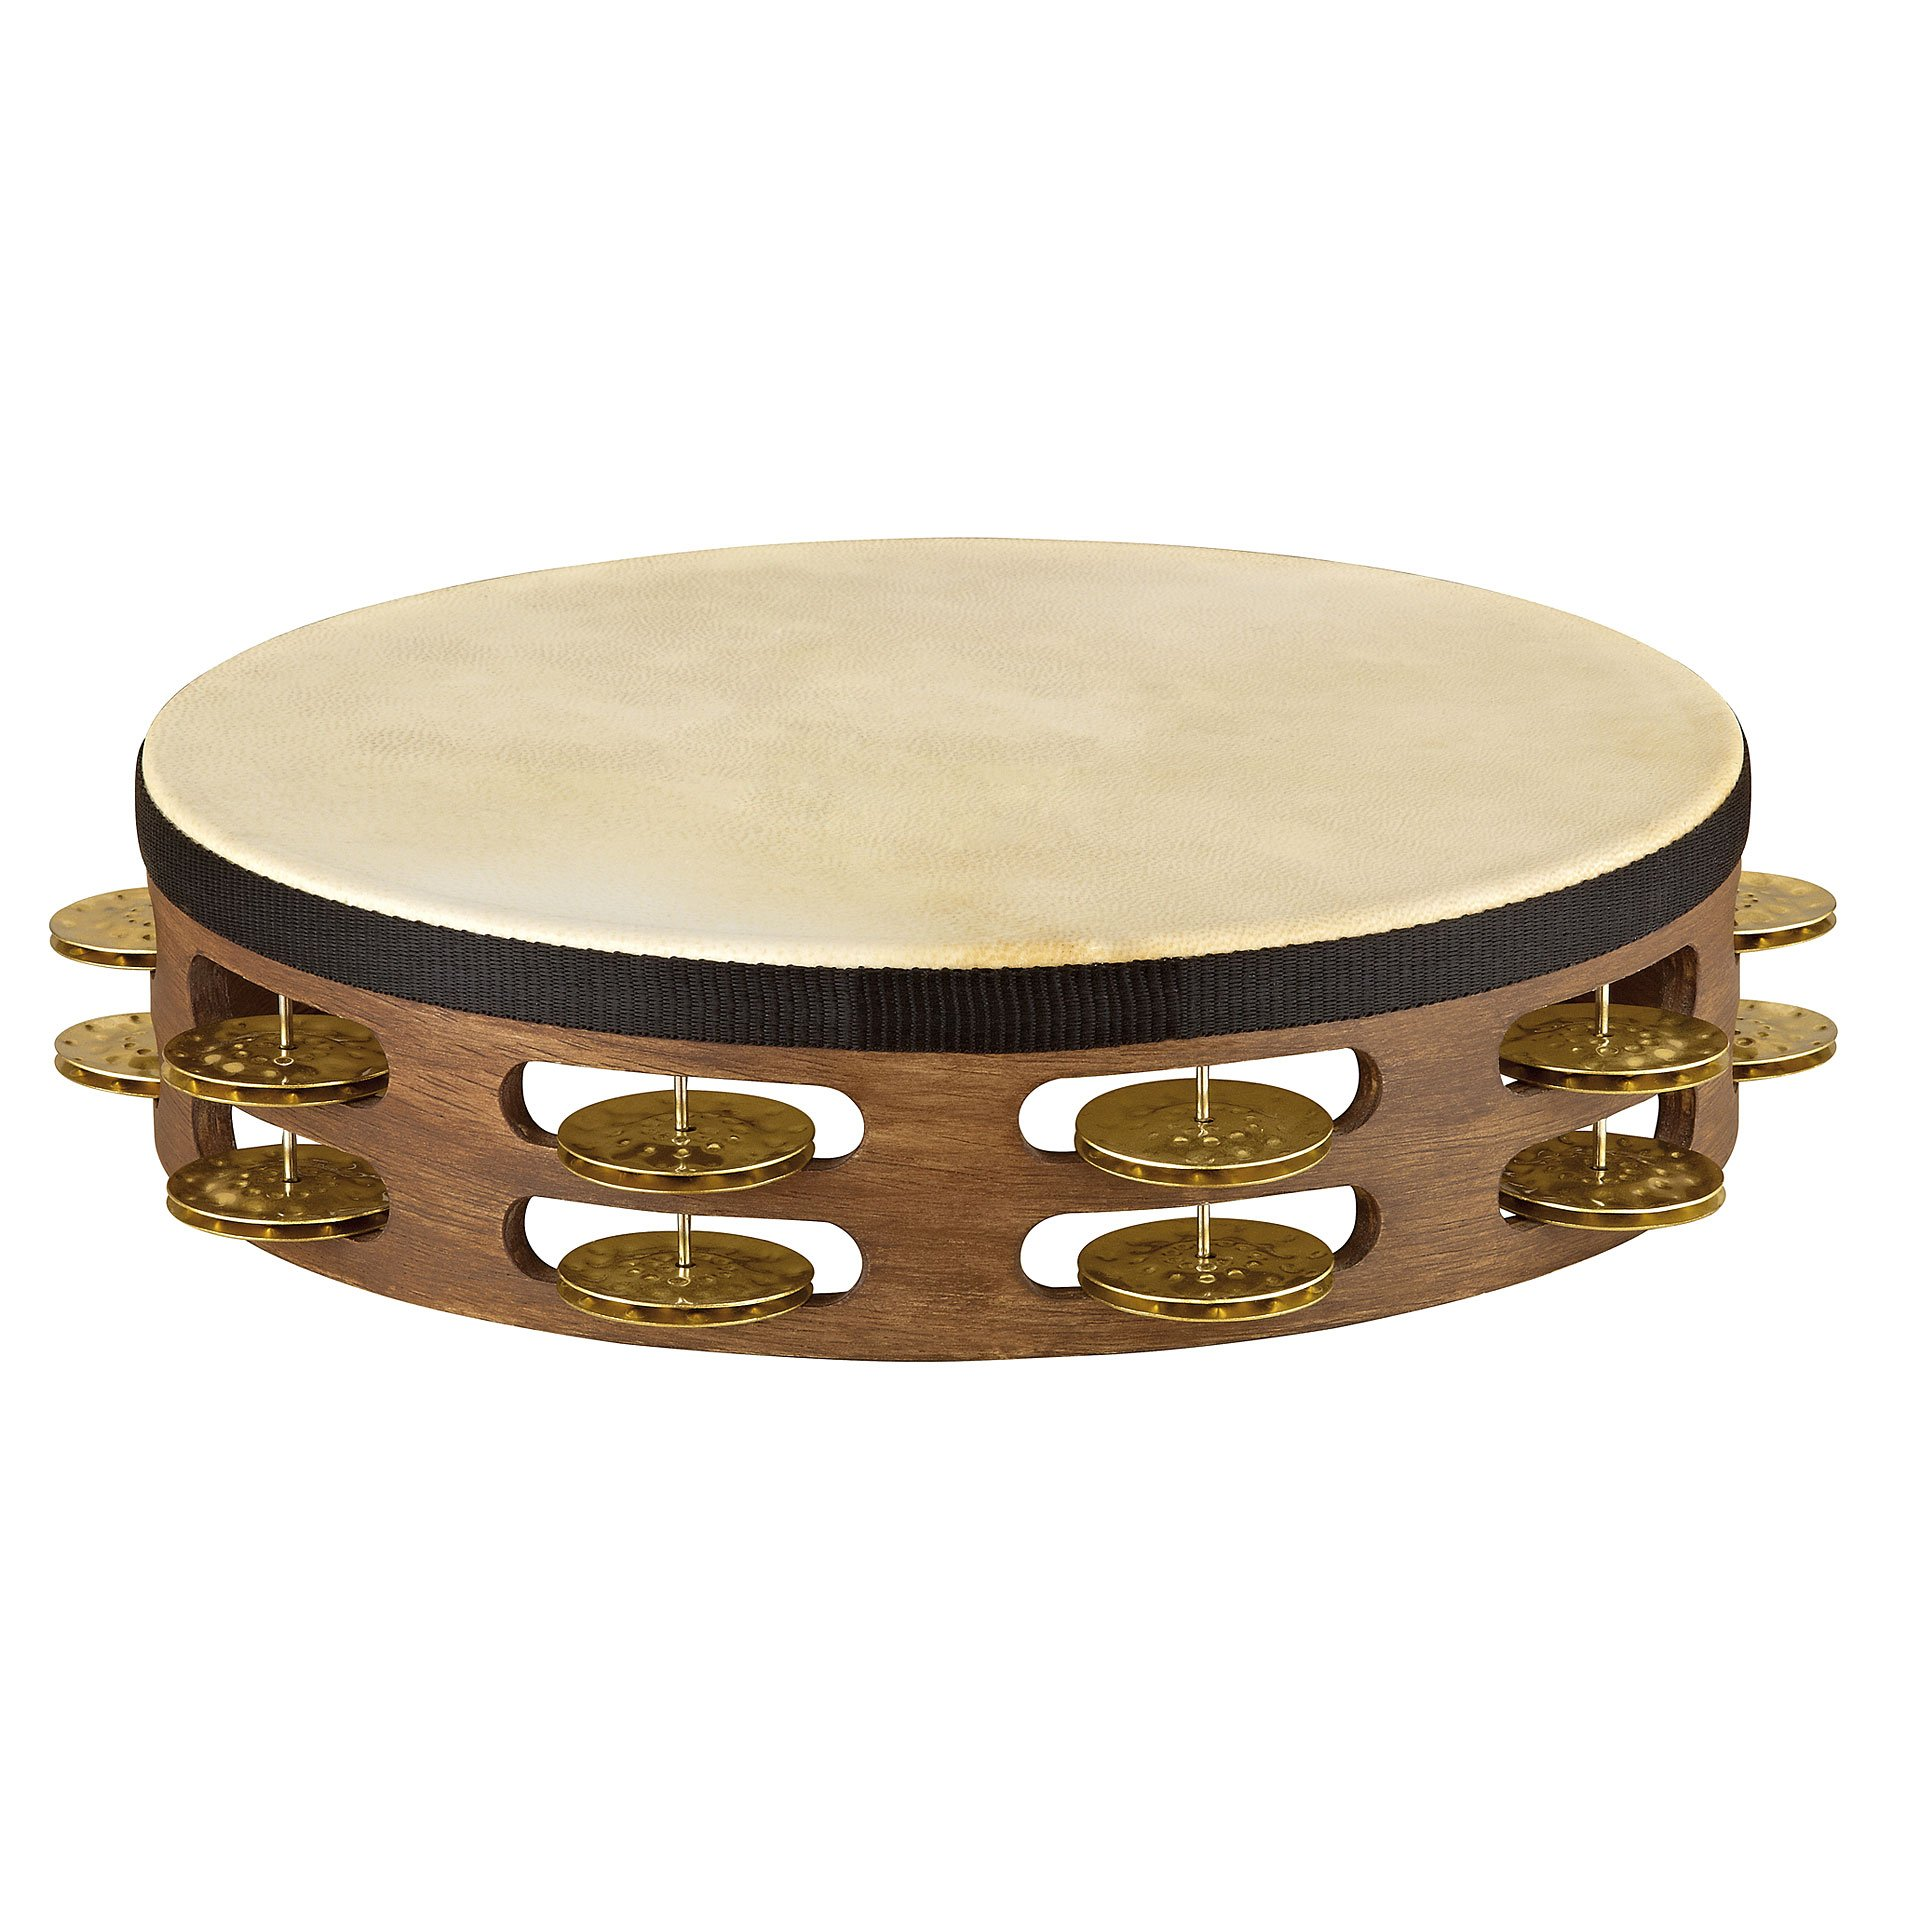 Meinl Percussion TAH2V-WB 10-Inch Vintage Wood Tambourine with Goat Skin Head and Hammered Brass Jingles, 2 Row by Meinl Percussion